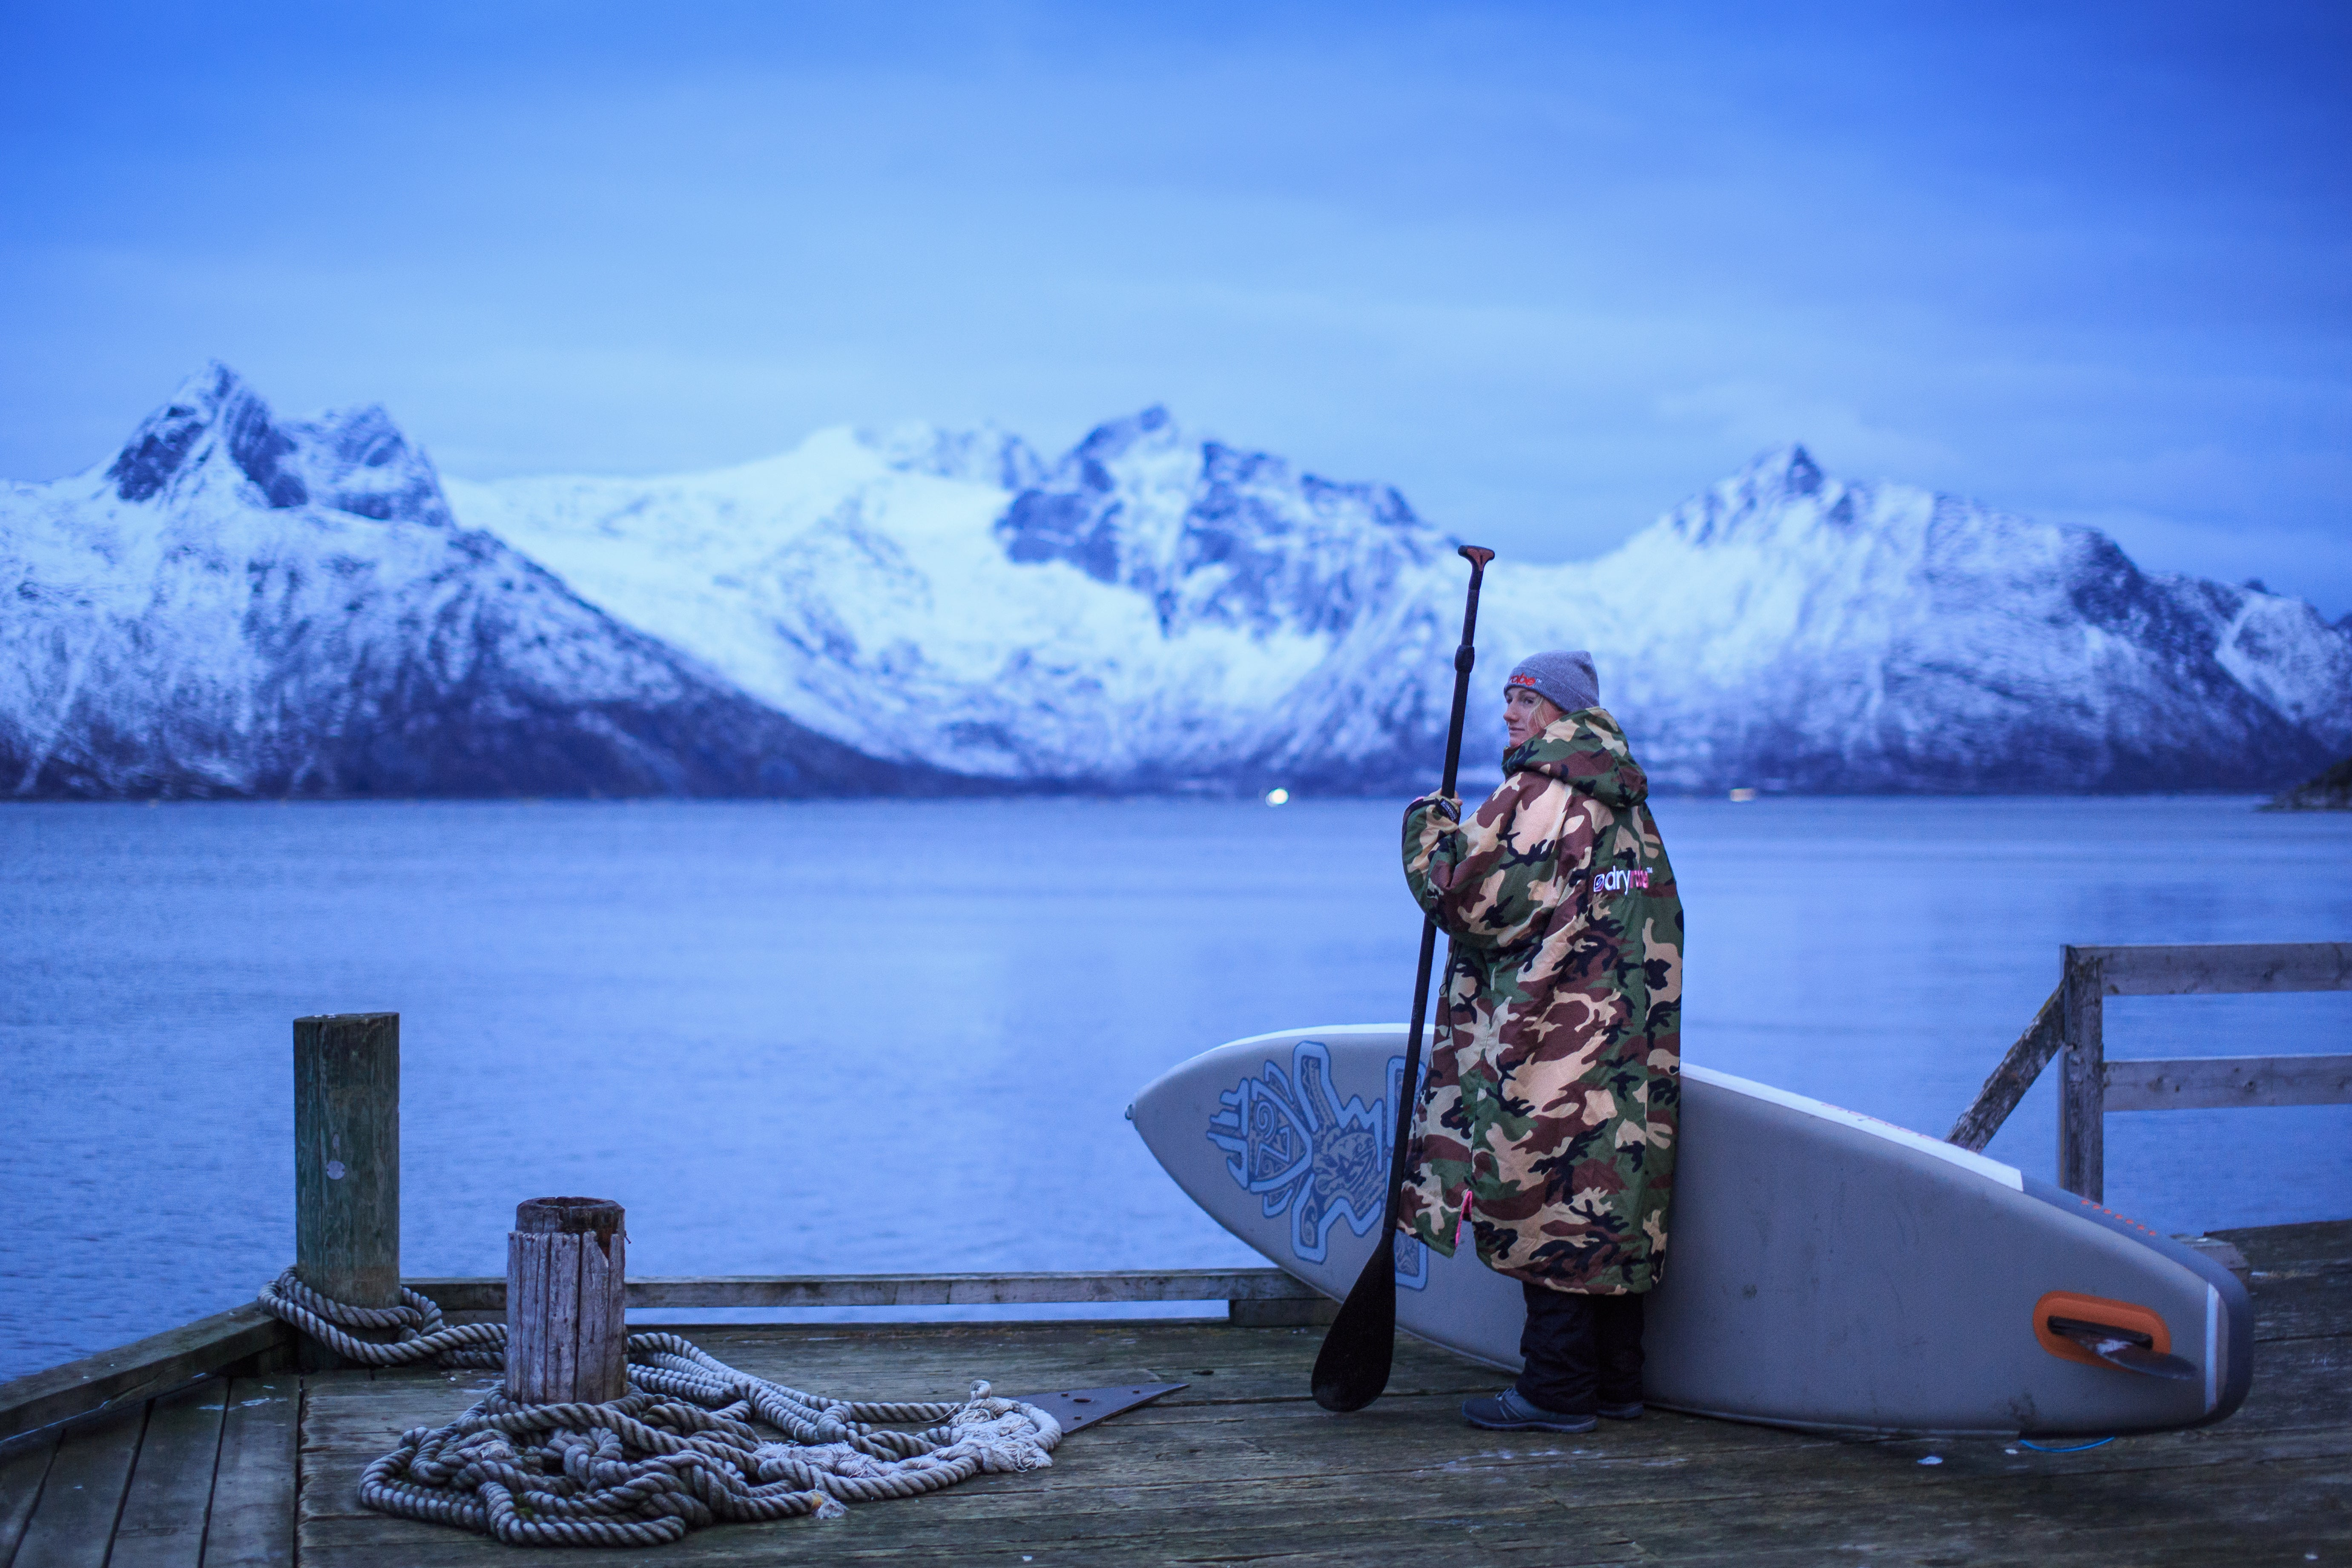 Cal Major standing by a Fjord in Norway in a dryrobe, holding a stand up paddleboard